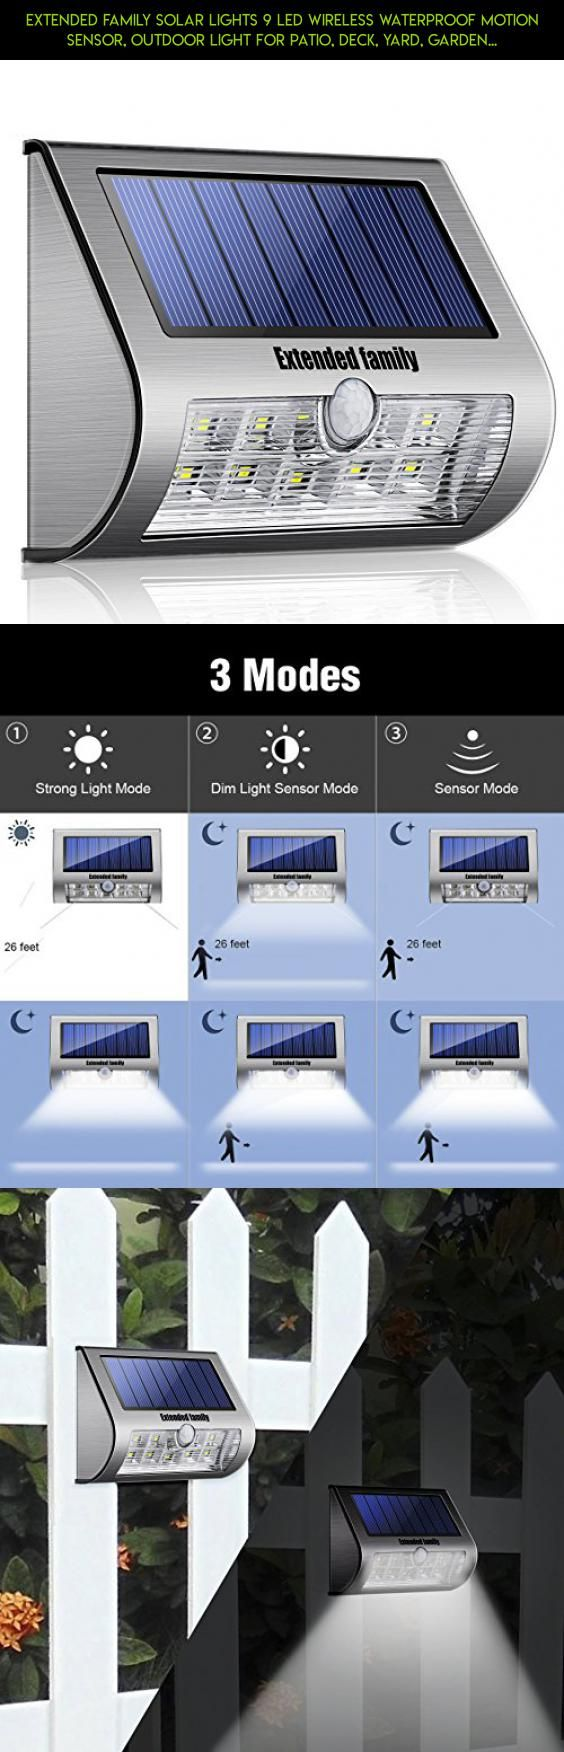 Solar power round recessed deck dock pathway garden led light ebay - Extended Family Solar Lights 9 Led Wireless Waterproof Motion Sensor Outdoor Light For Patio Deck Yard Garden With Motion Activated Auto On Off